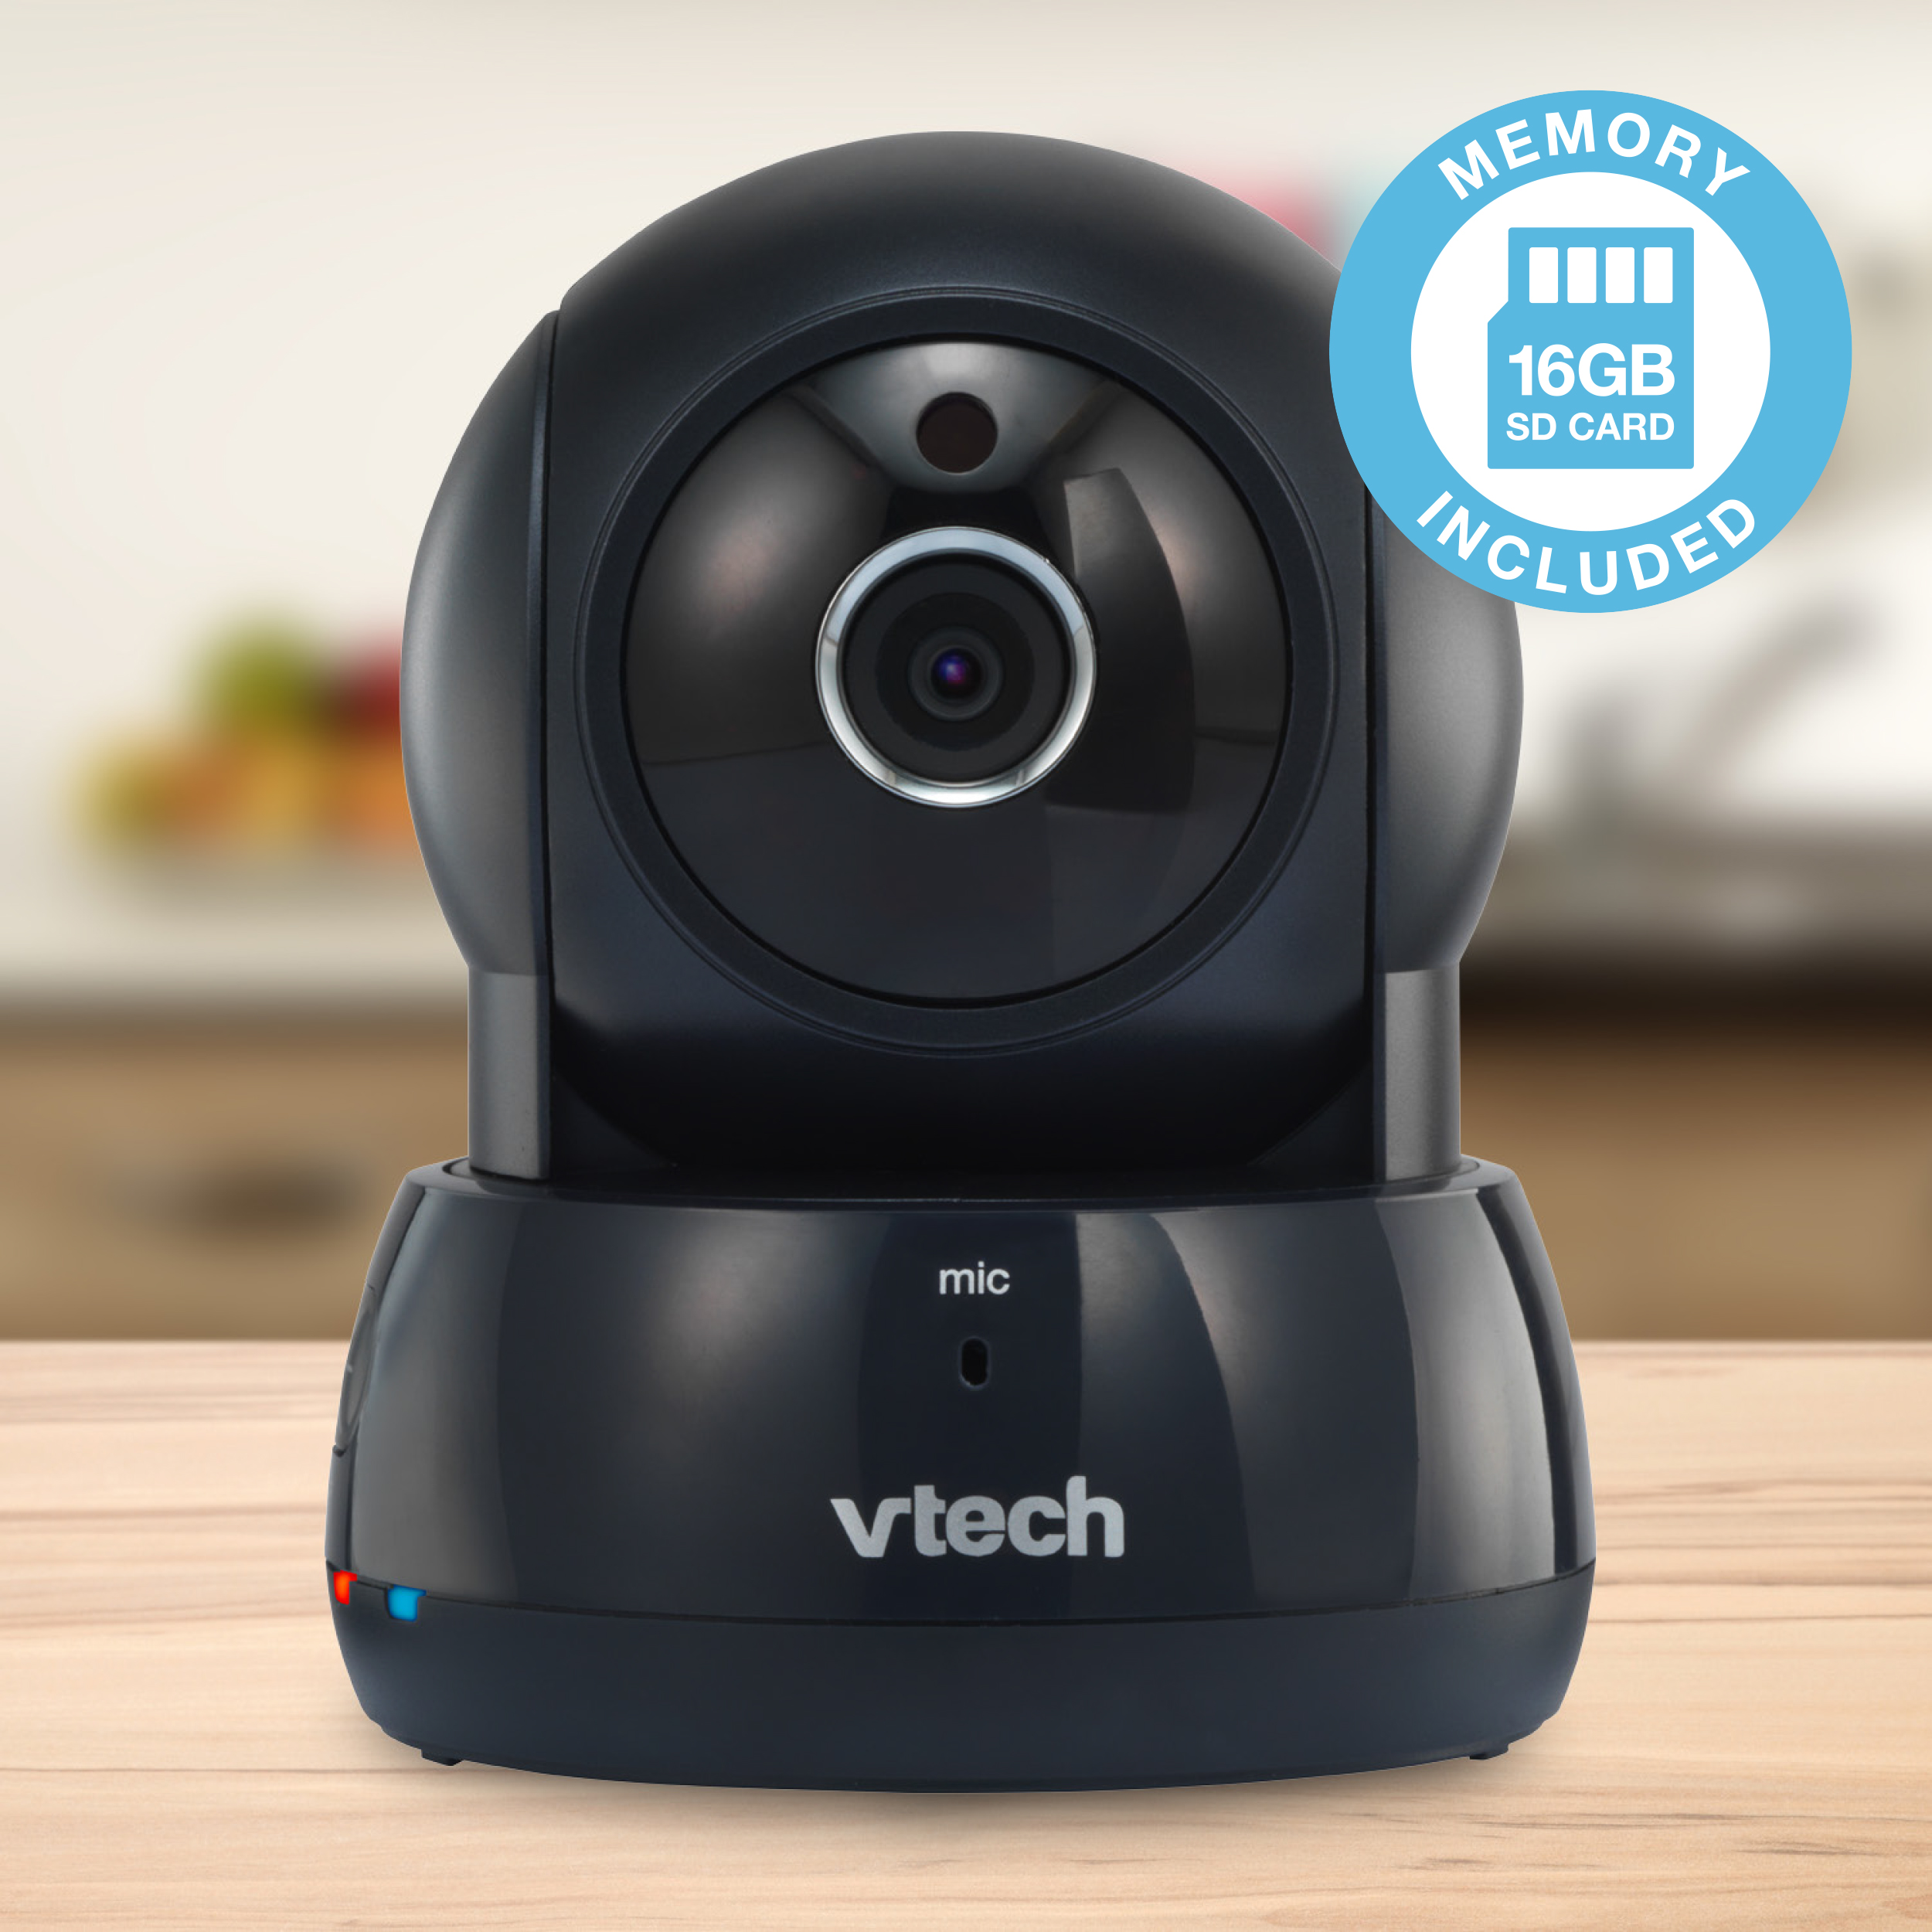 VTech VC9311-122 16GB Wi-Fi IP Video Camera with Remote Pan & Tilt, Free Live Streaming and Automatic Infrared Night... by VTech